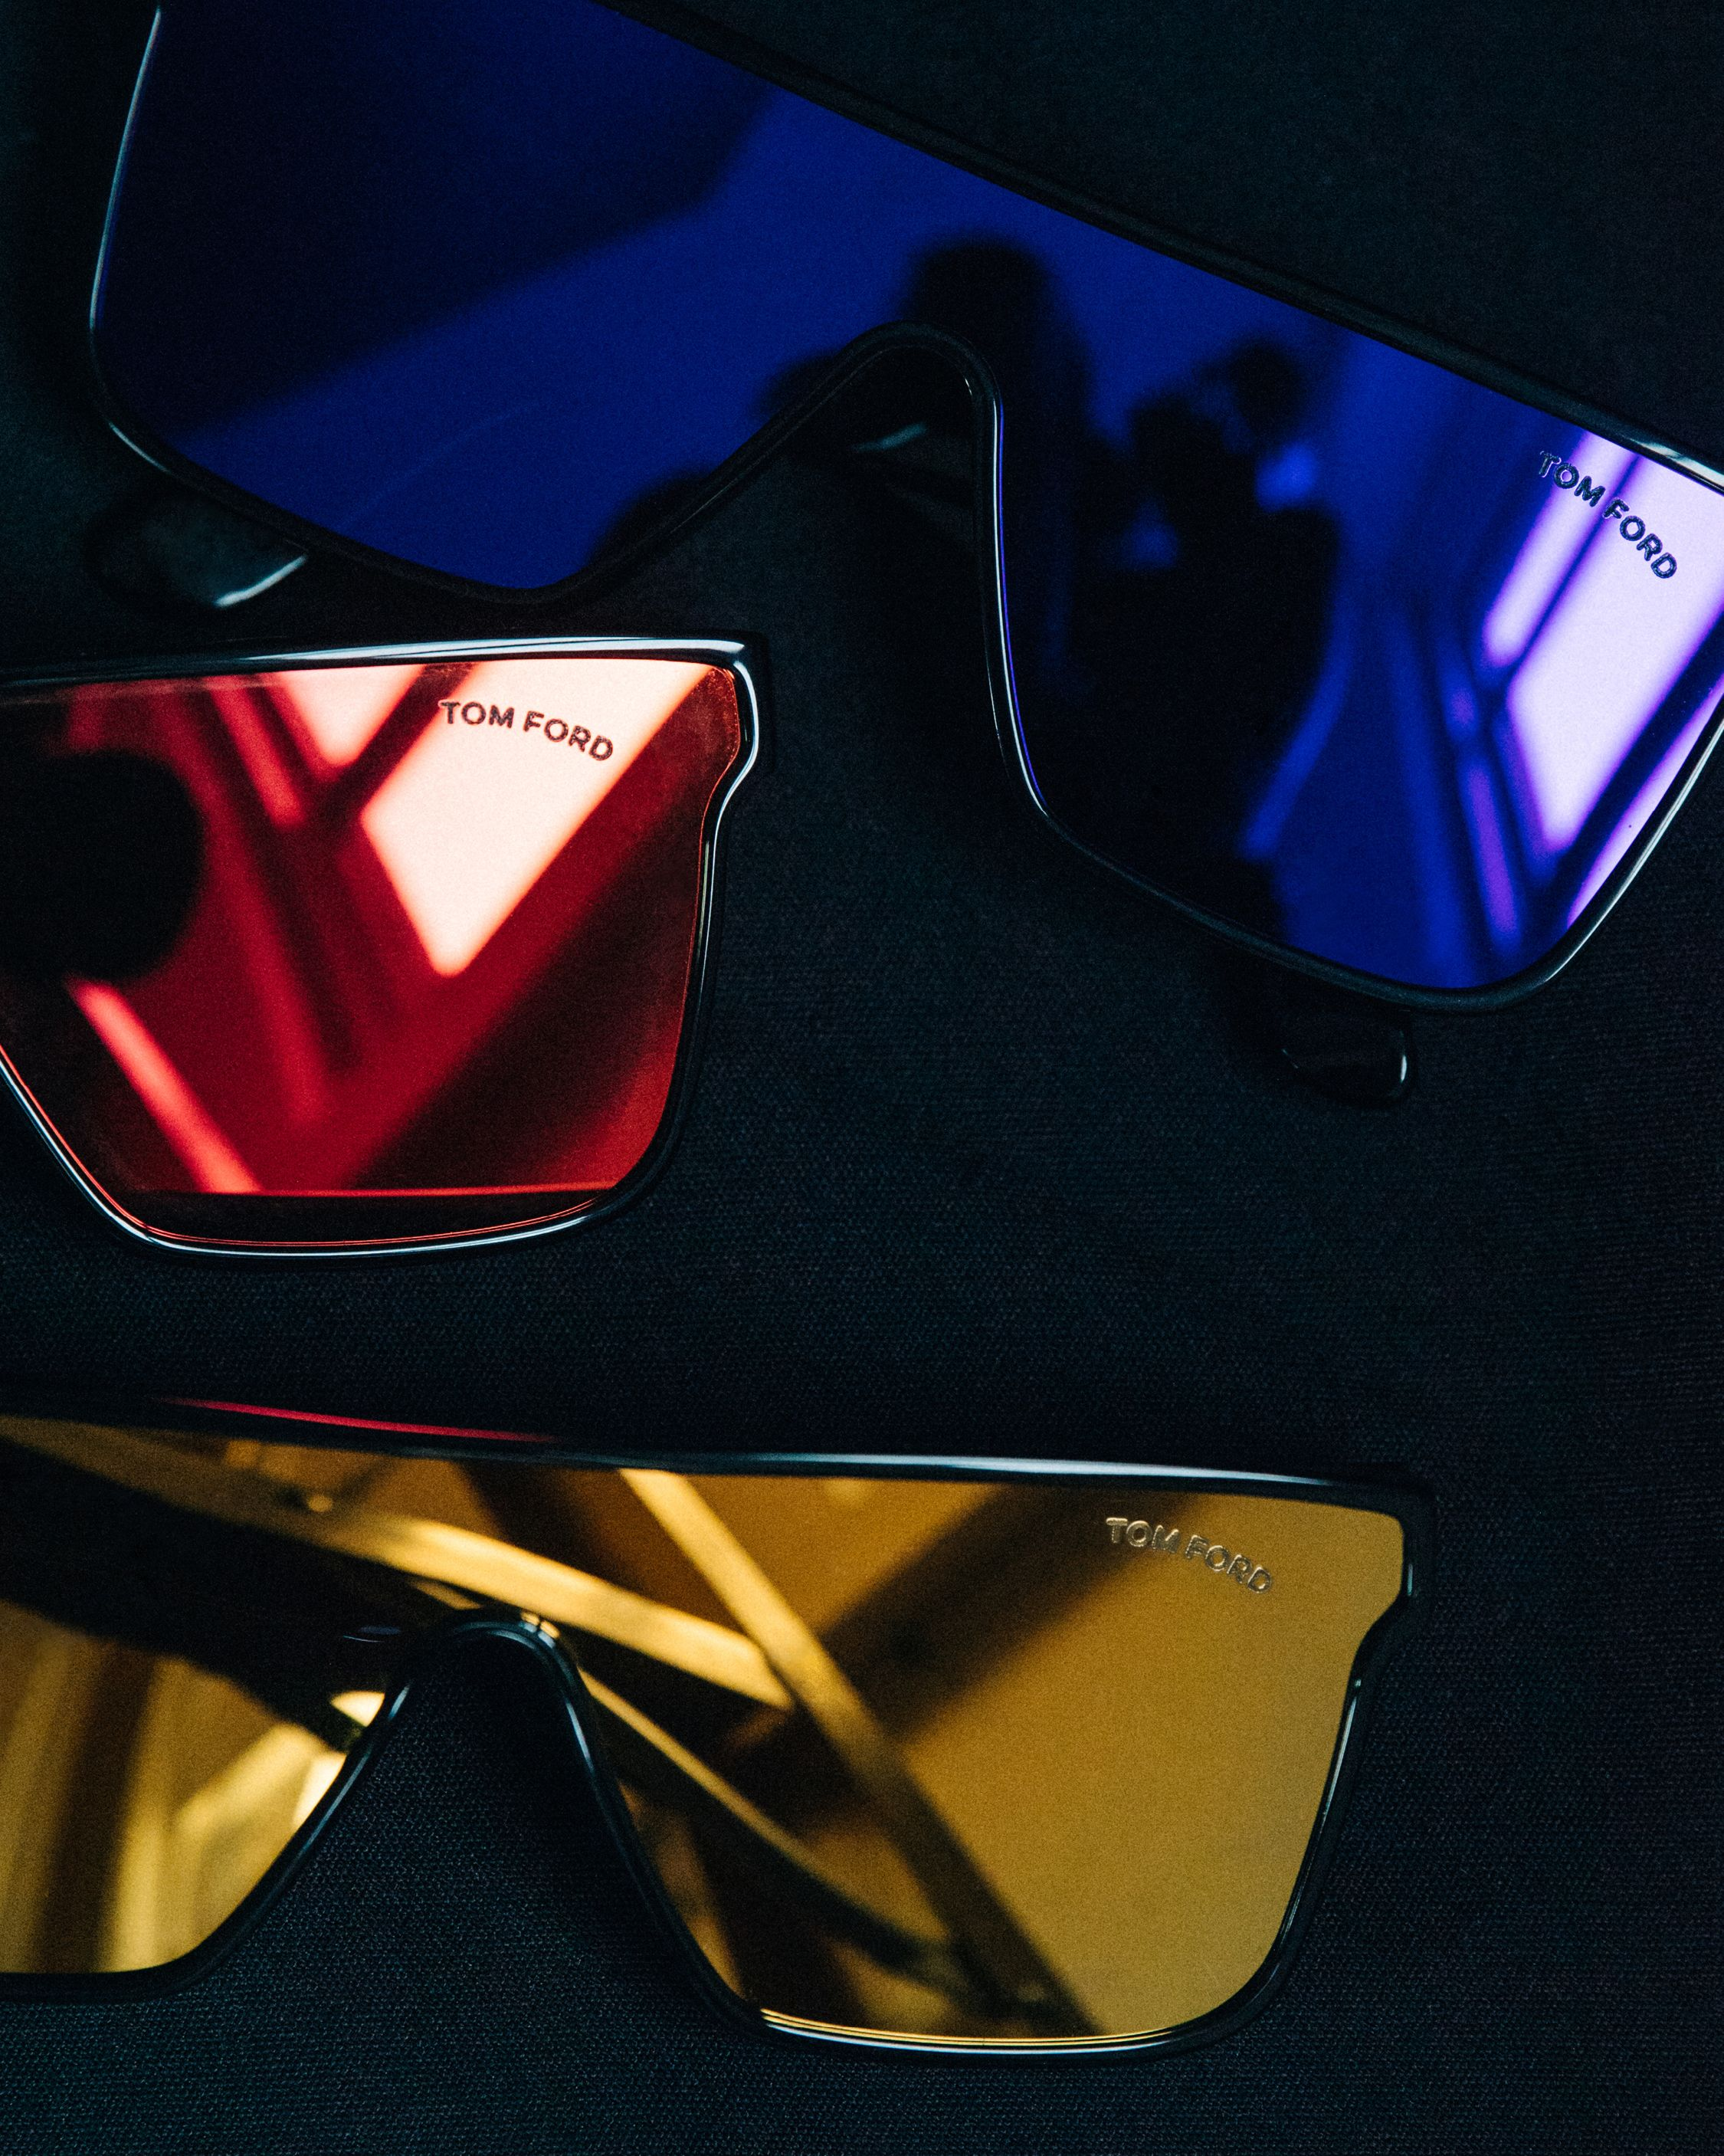 73cb7e70d Whyat sunglasses in 2019 | TOM FORD EYEWEAR | Sunglasses, Tom ford ...